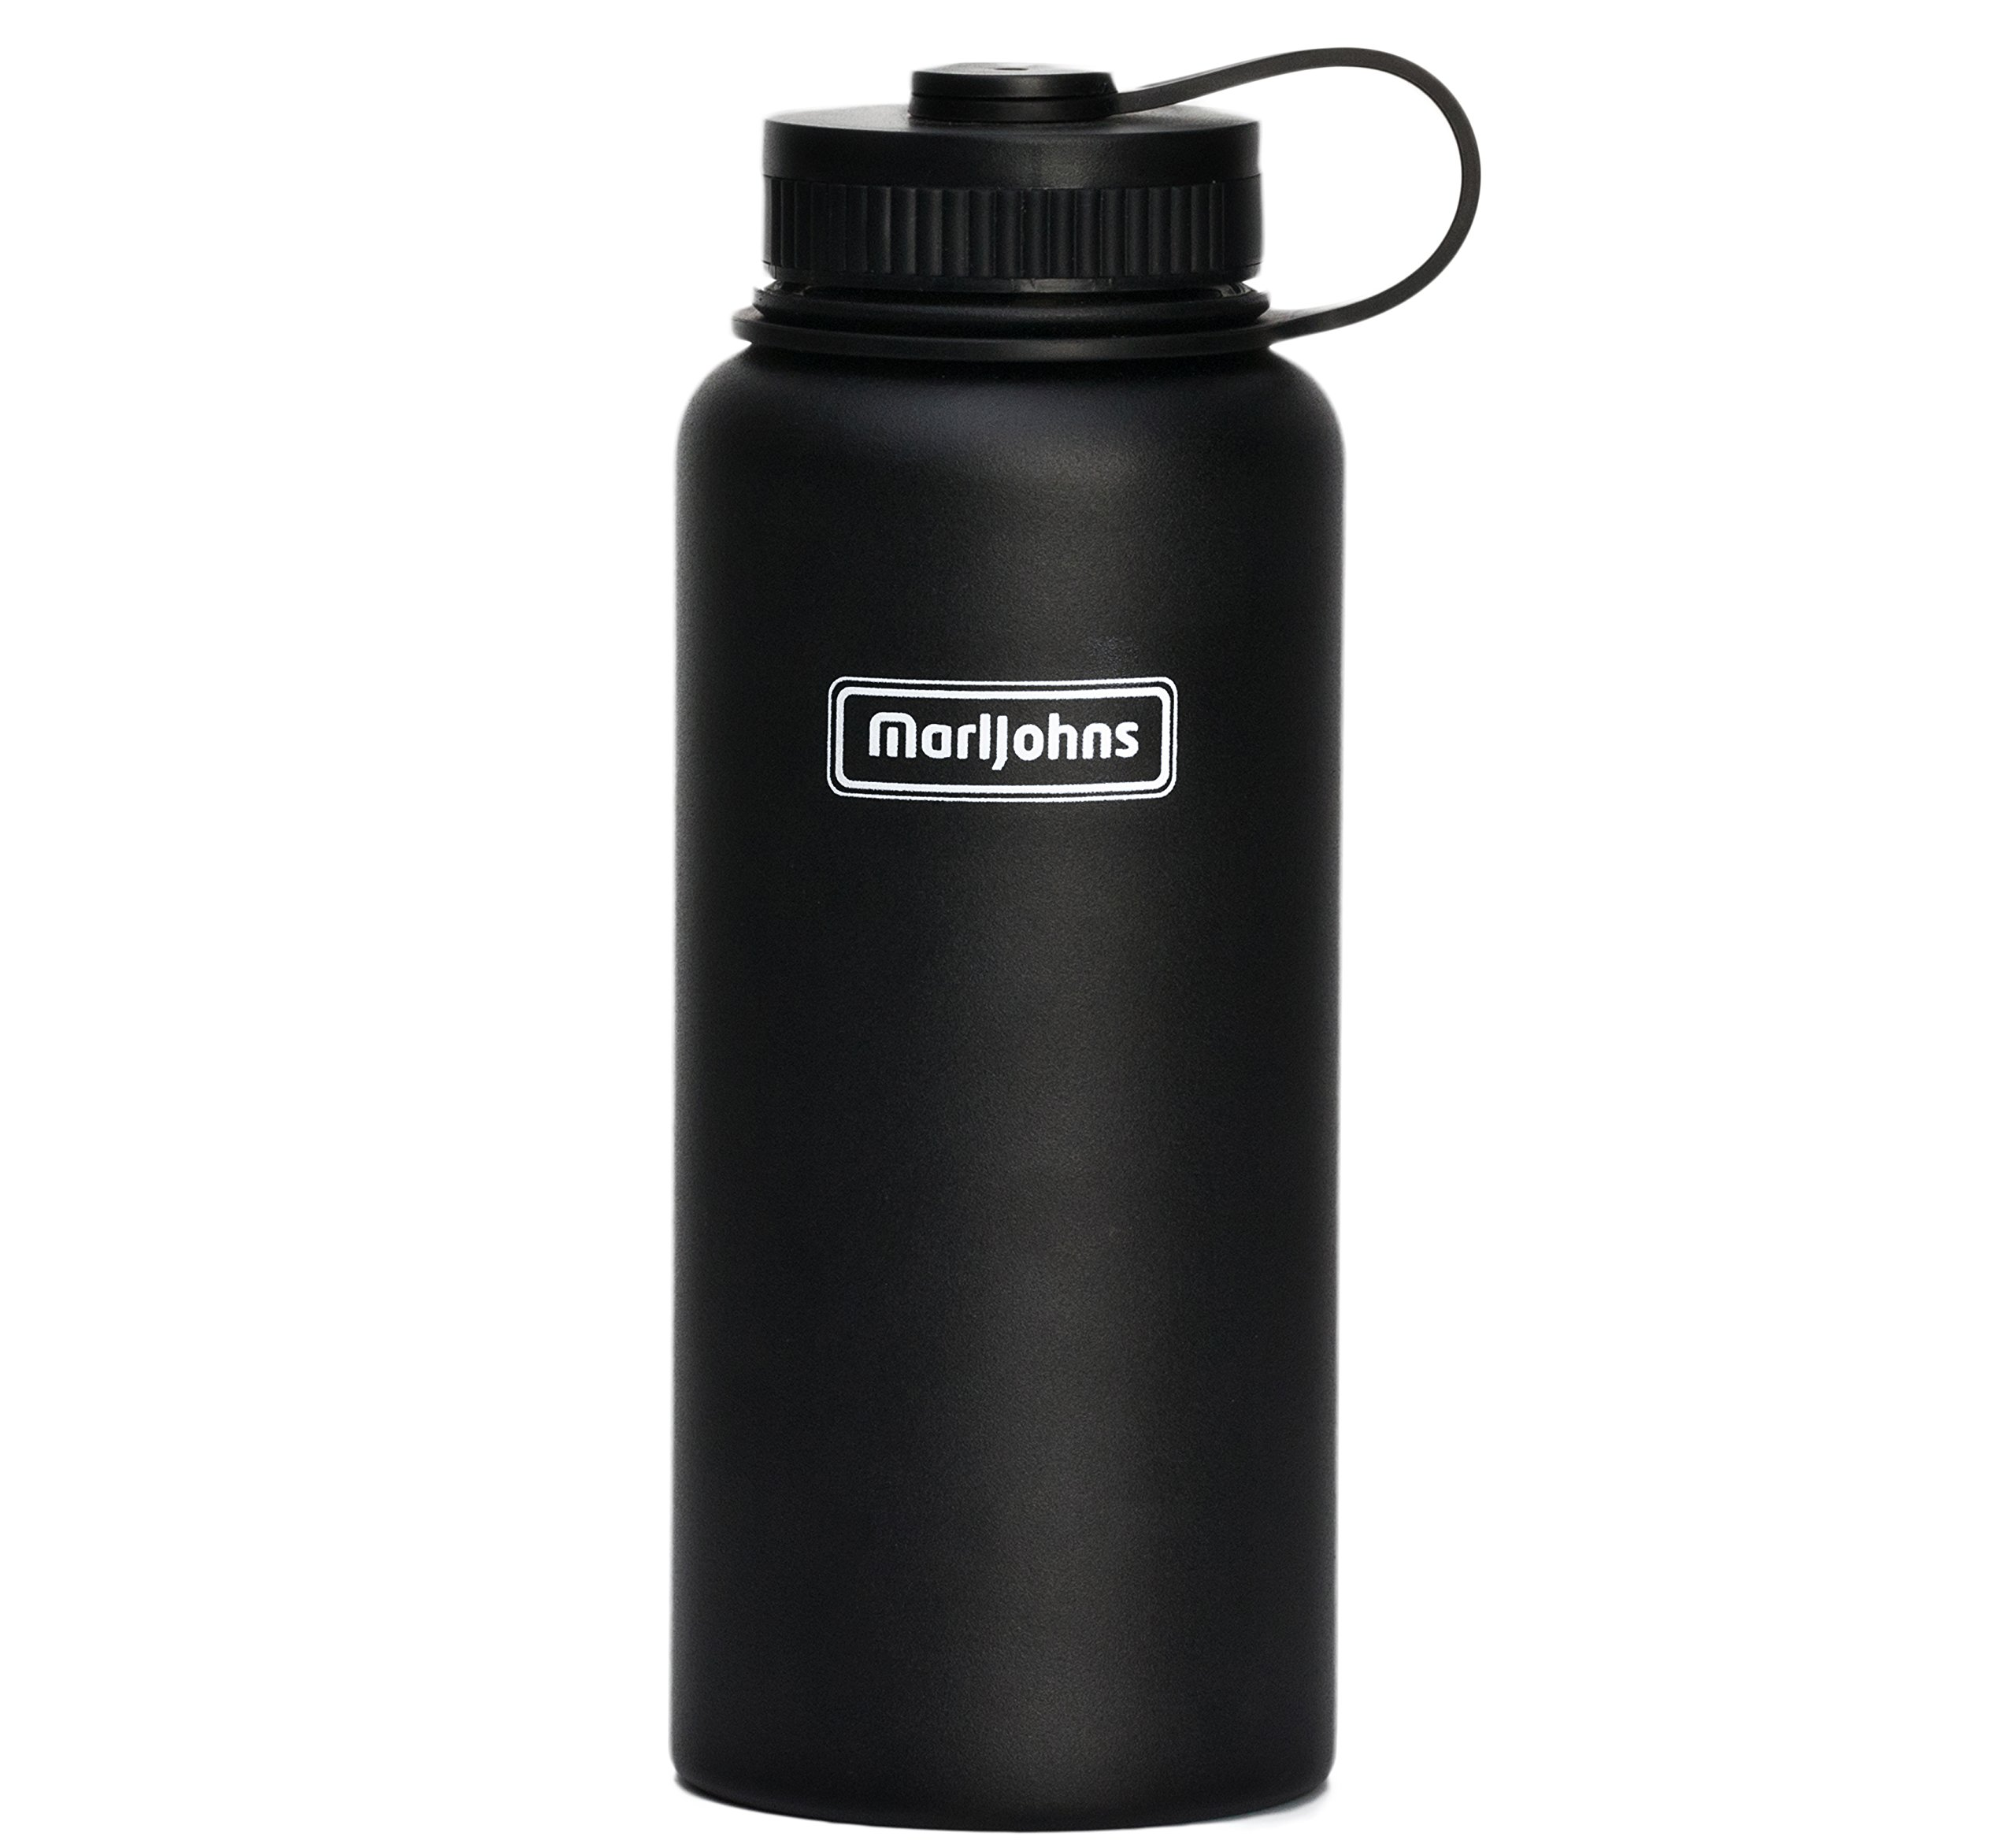 MarlJohns Double Walled Vacuum Insulated Stainless Steel Thermos Flask - Cold 24 Hrs, Hot 12 Hrs.100% Leak & Sweat Proof,32 Oz & 40 Oz,BPA Free+Environmentally Friendly Packing (Black, 32-Ounce)